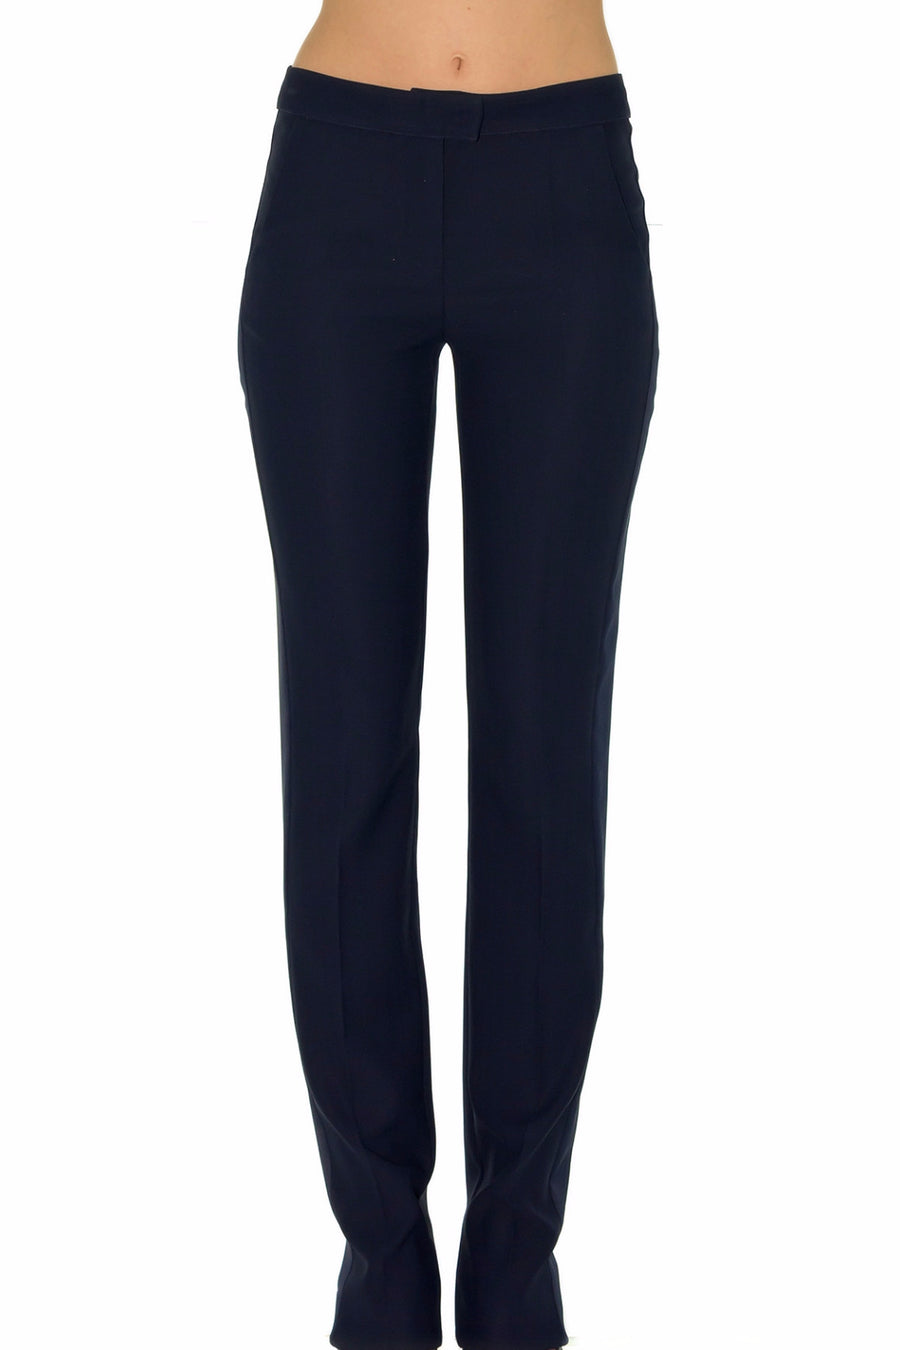 STEFANIE-RENOMA-STRAIGHT-FIT-TUXEDO-TROUSERS-SILKARMOUR